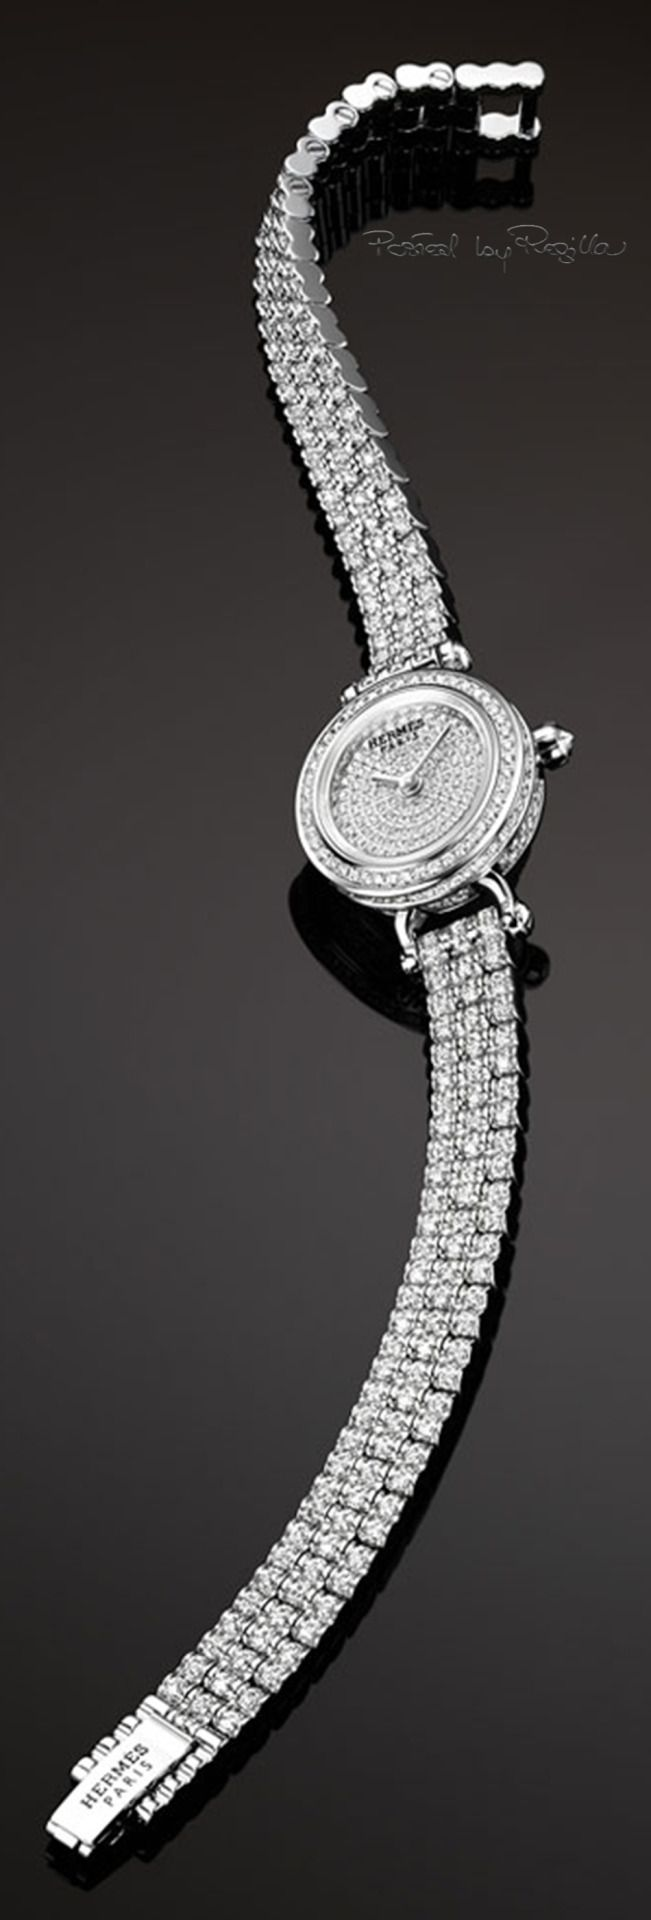 ItsHot carries the most extensive range of breath-taking diamond jewelry and watches including a custom design service, all at factory direct prices. http://www.itshot.com/mens-ladies-diamond-watches.aspx